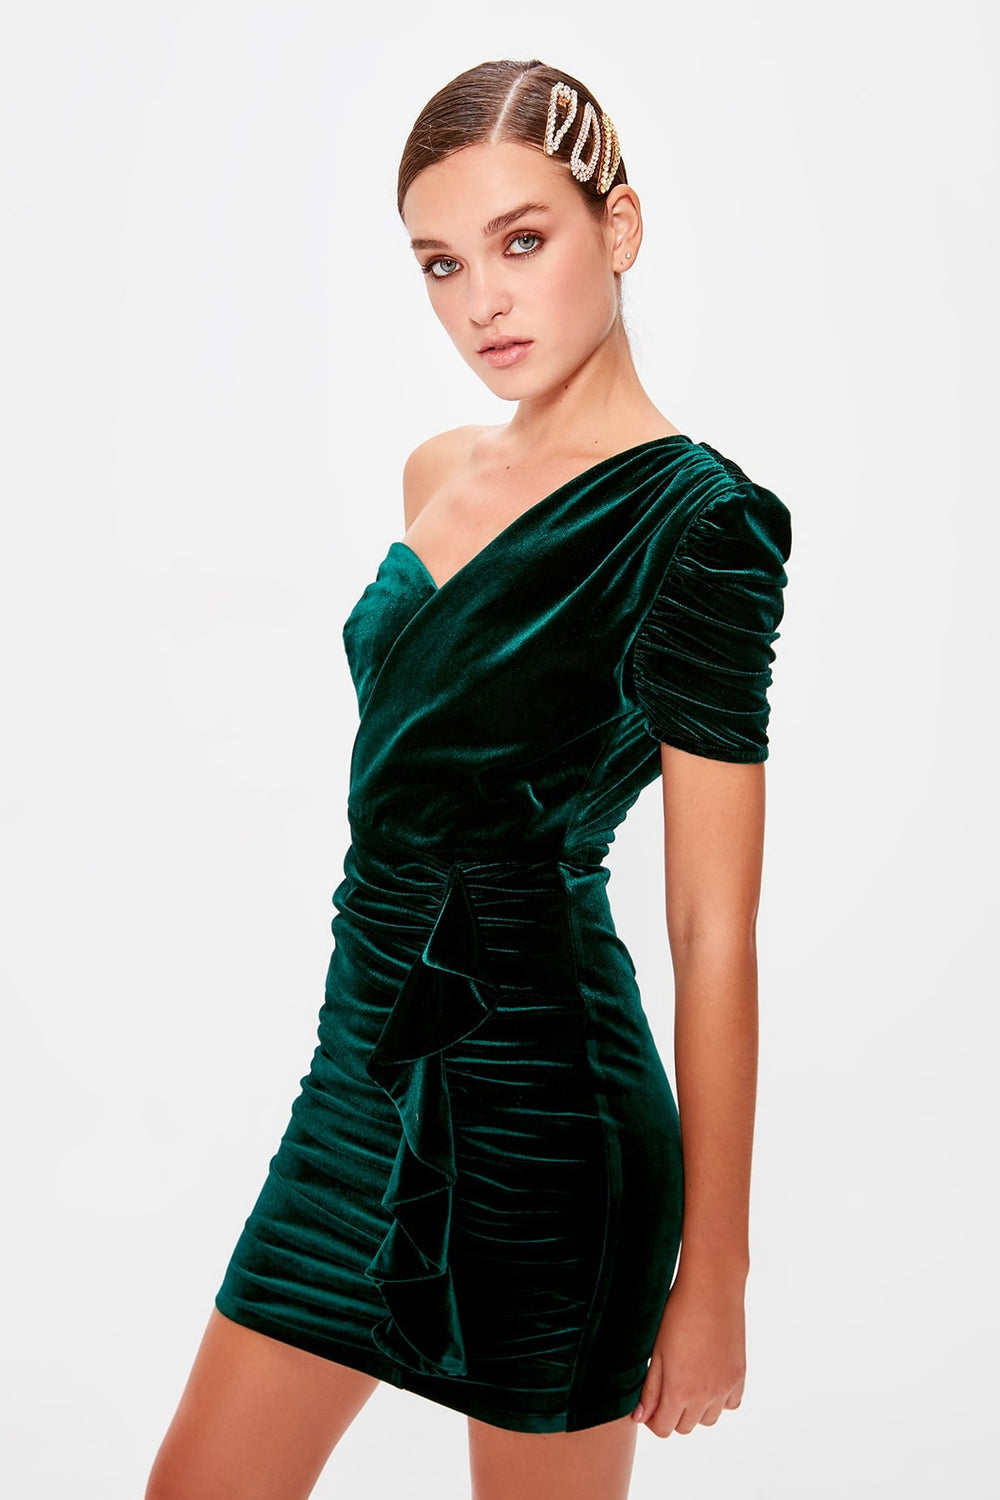 Emerald Green Drape Detail Single Sleeve Dress - Top Maxy